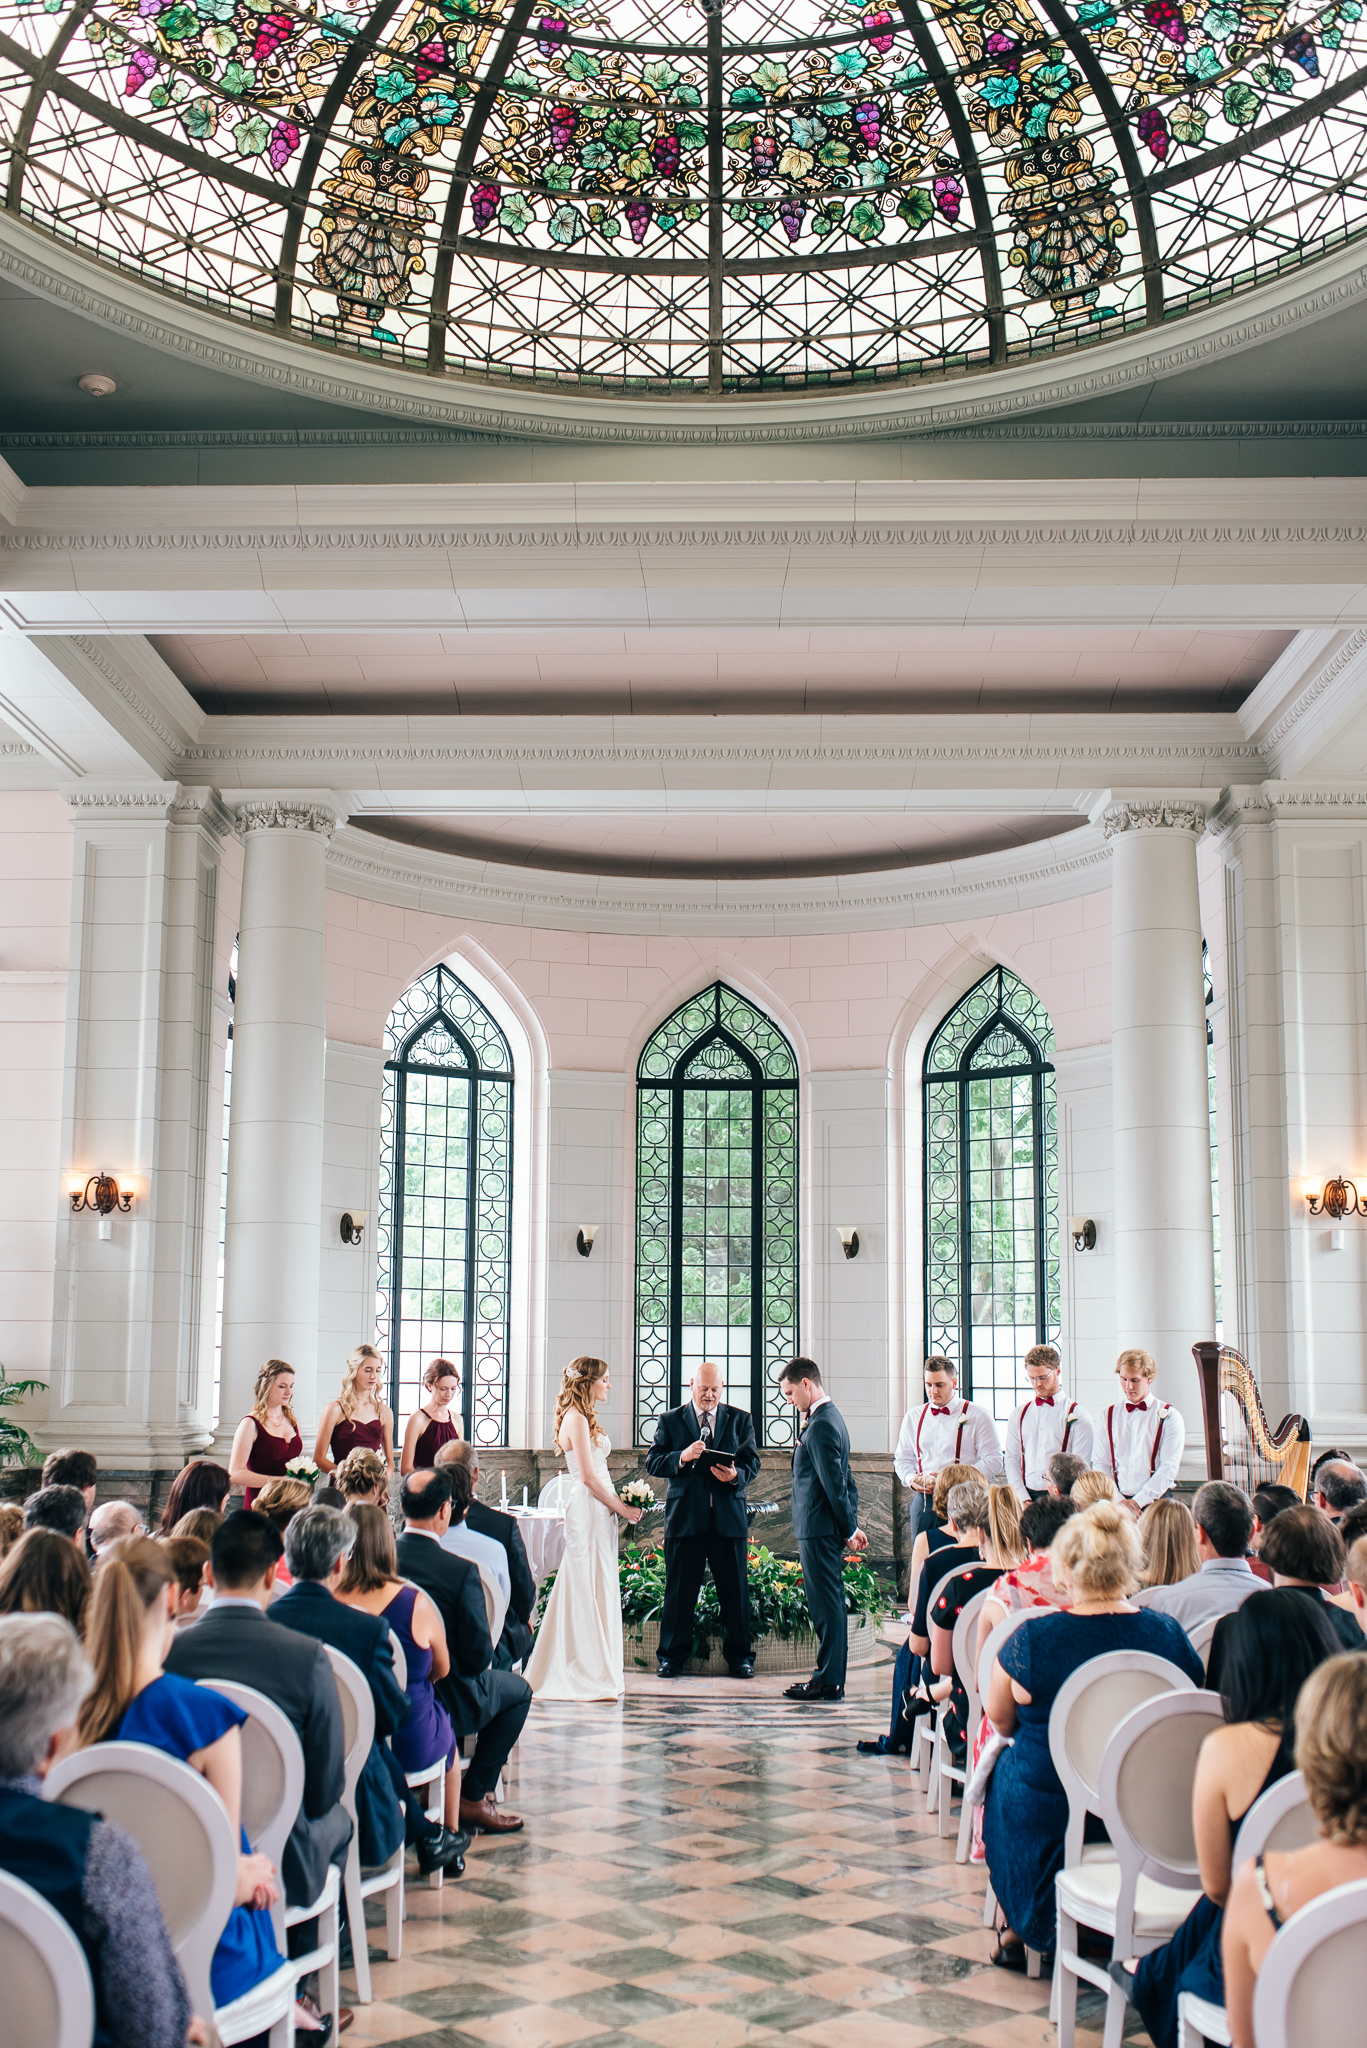 Casa Loma wedding ceremony